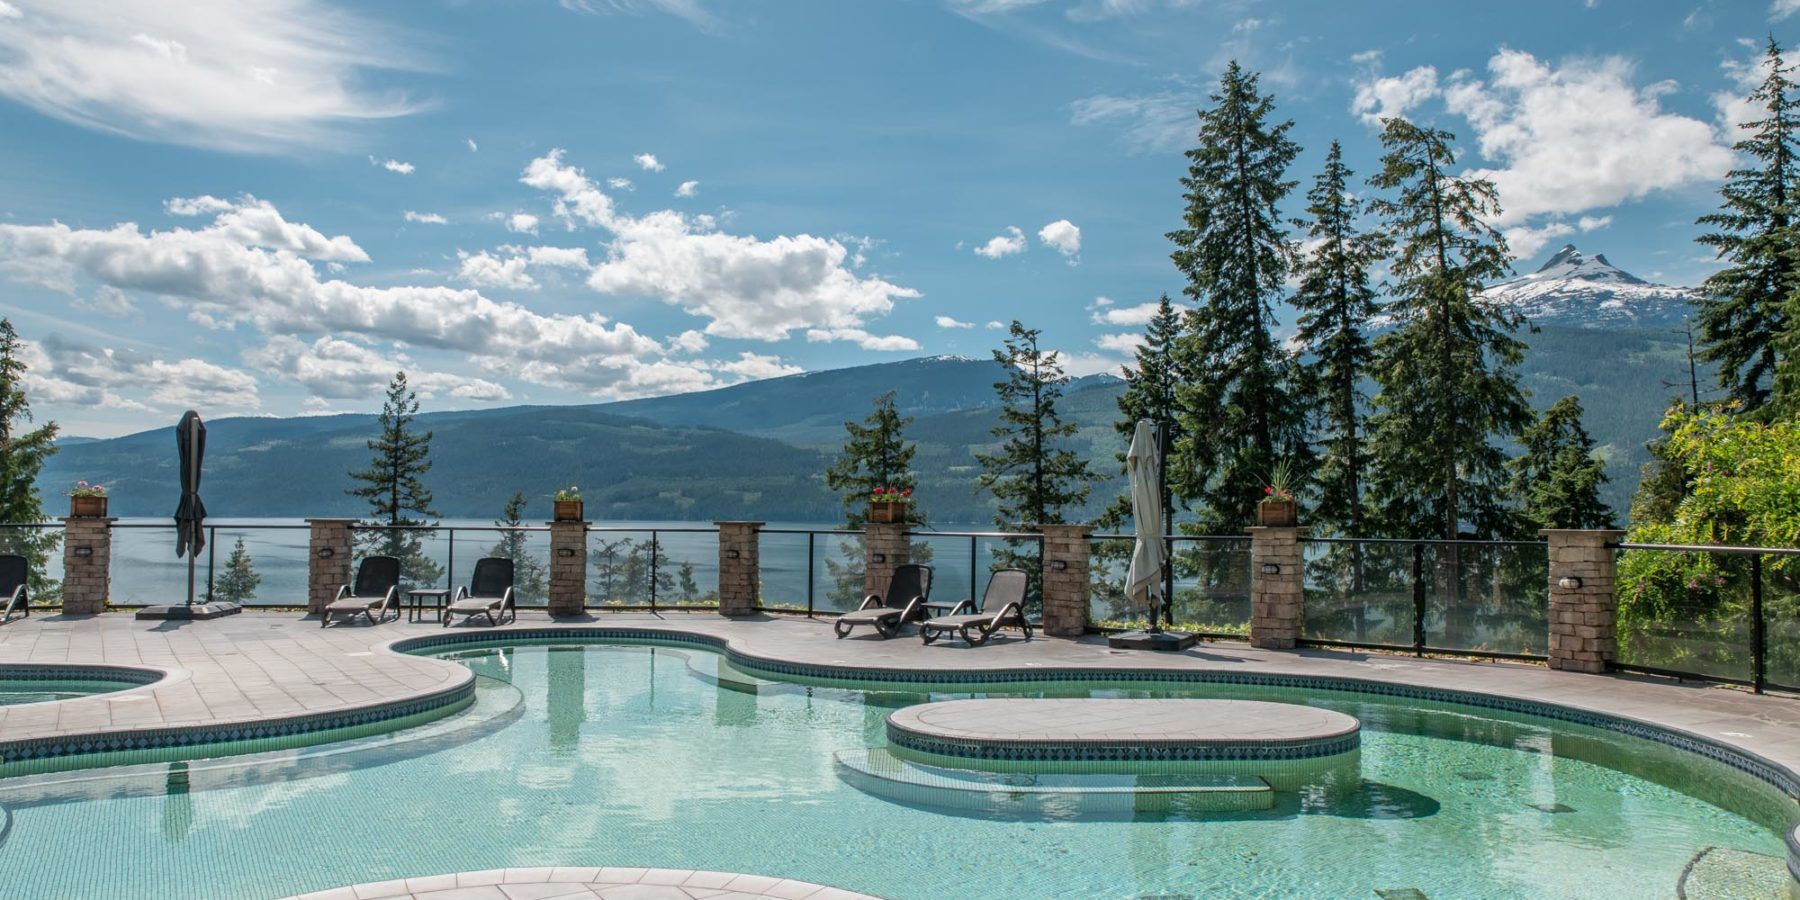 The pools at Halcyon with mountains in the background